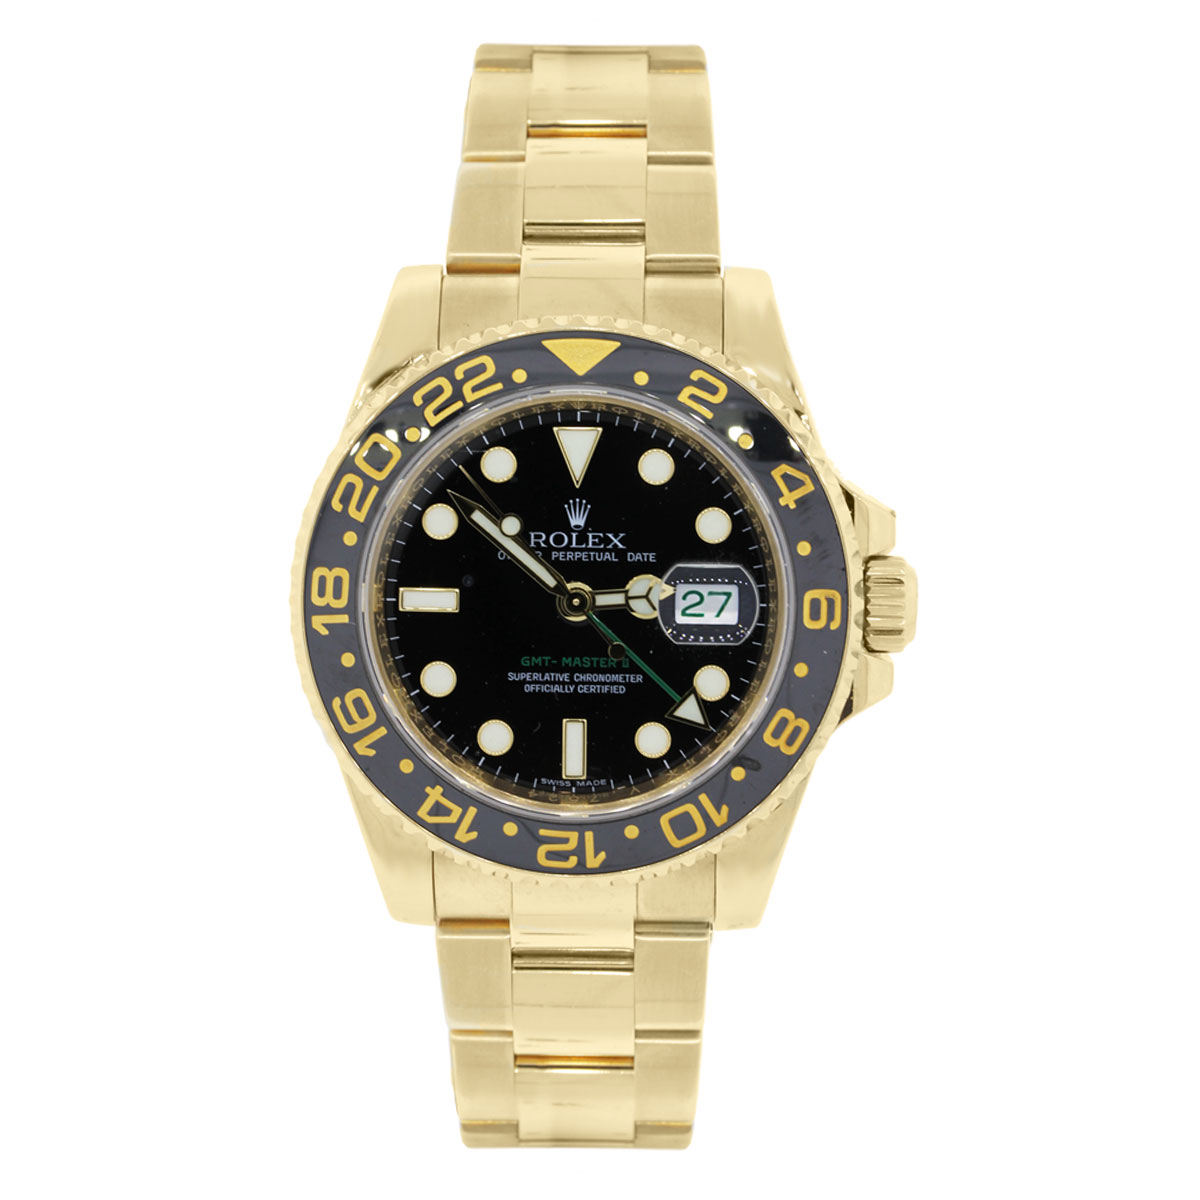 rolex 116718 gmt master ii yellow gold black dial watch. Black Bedroom Furniture Sets. Home Design Ideas